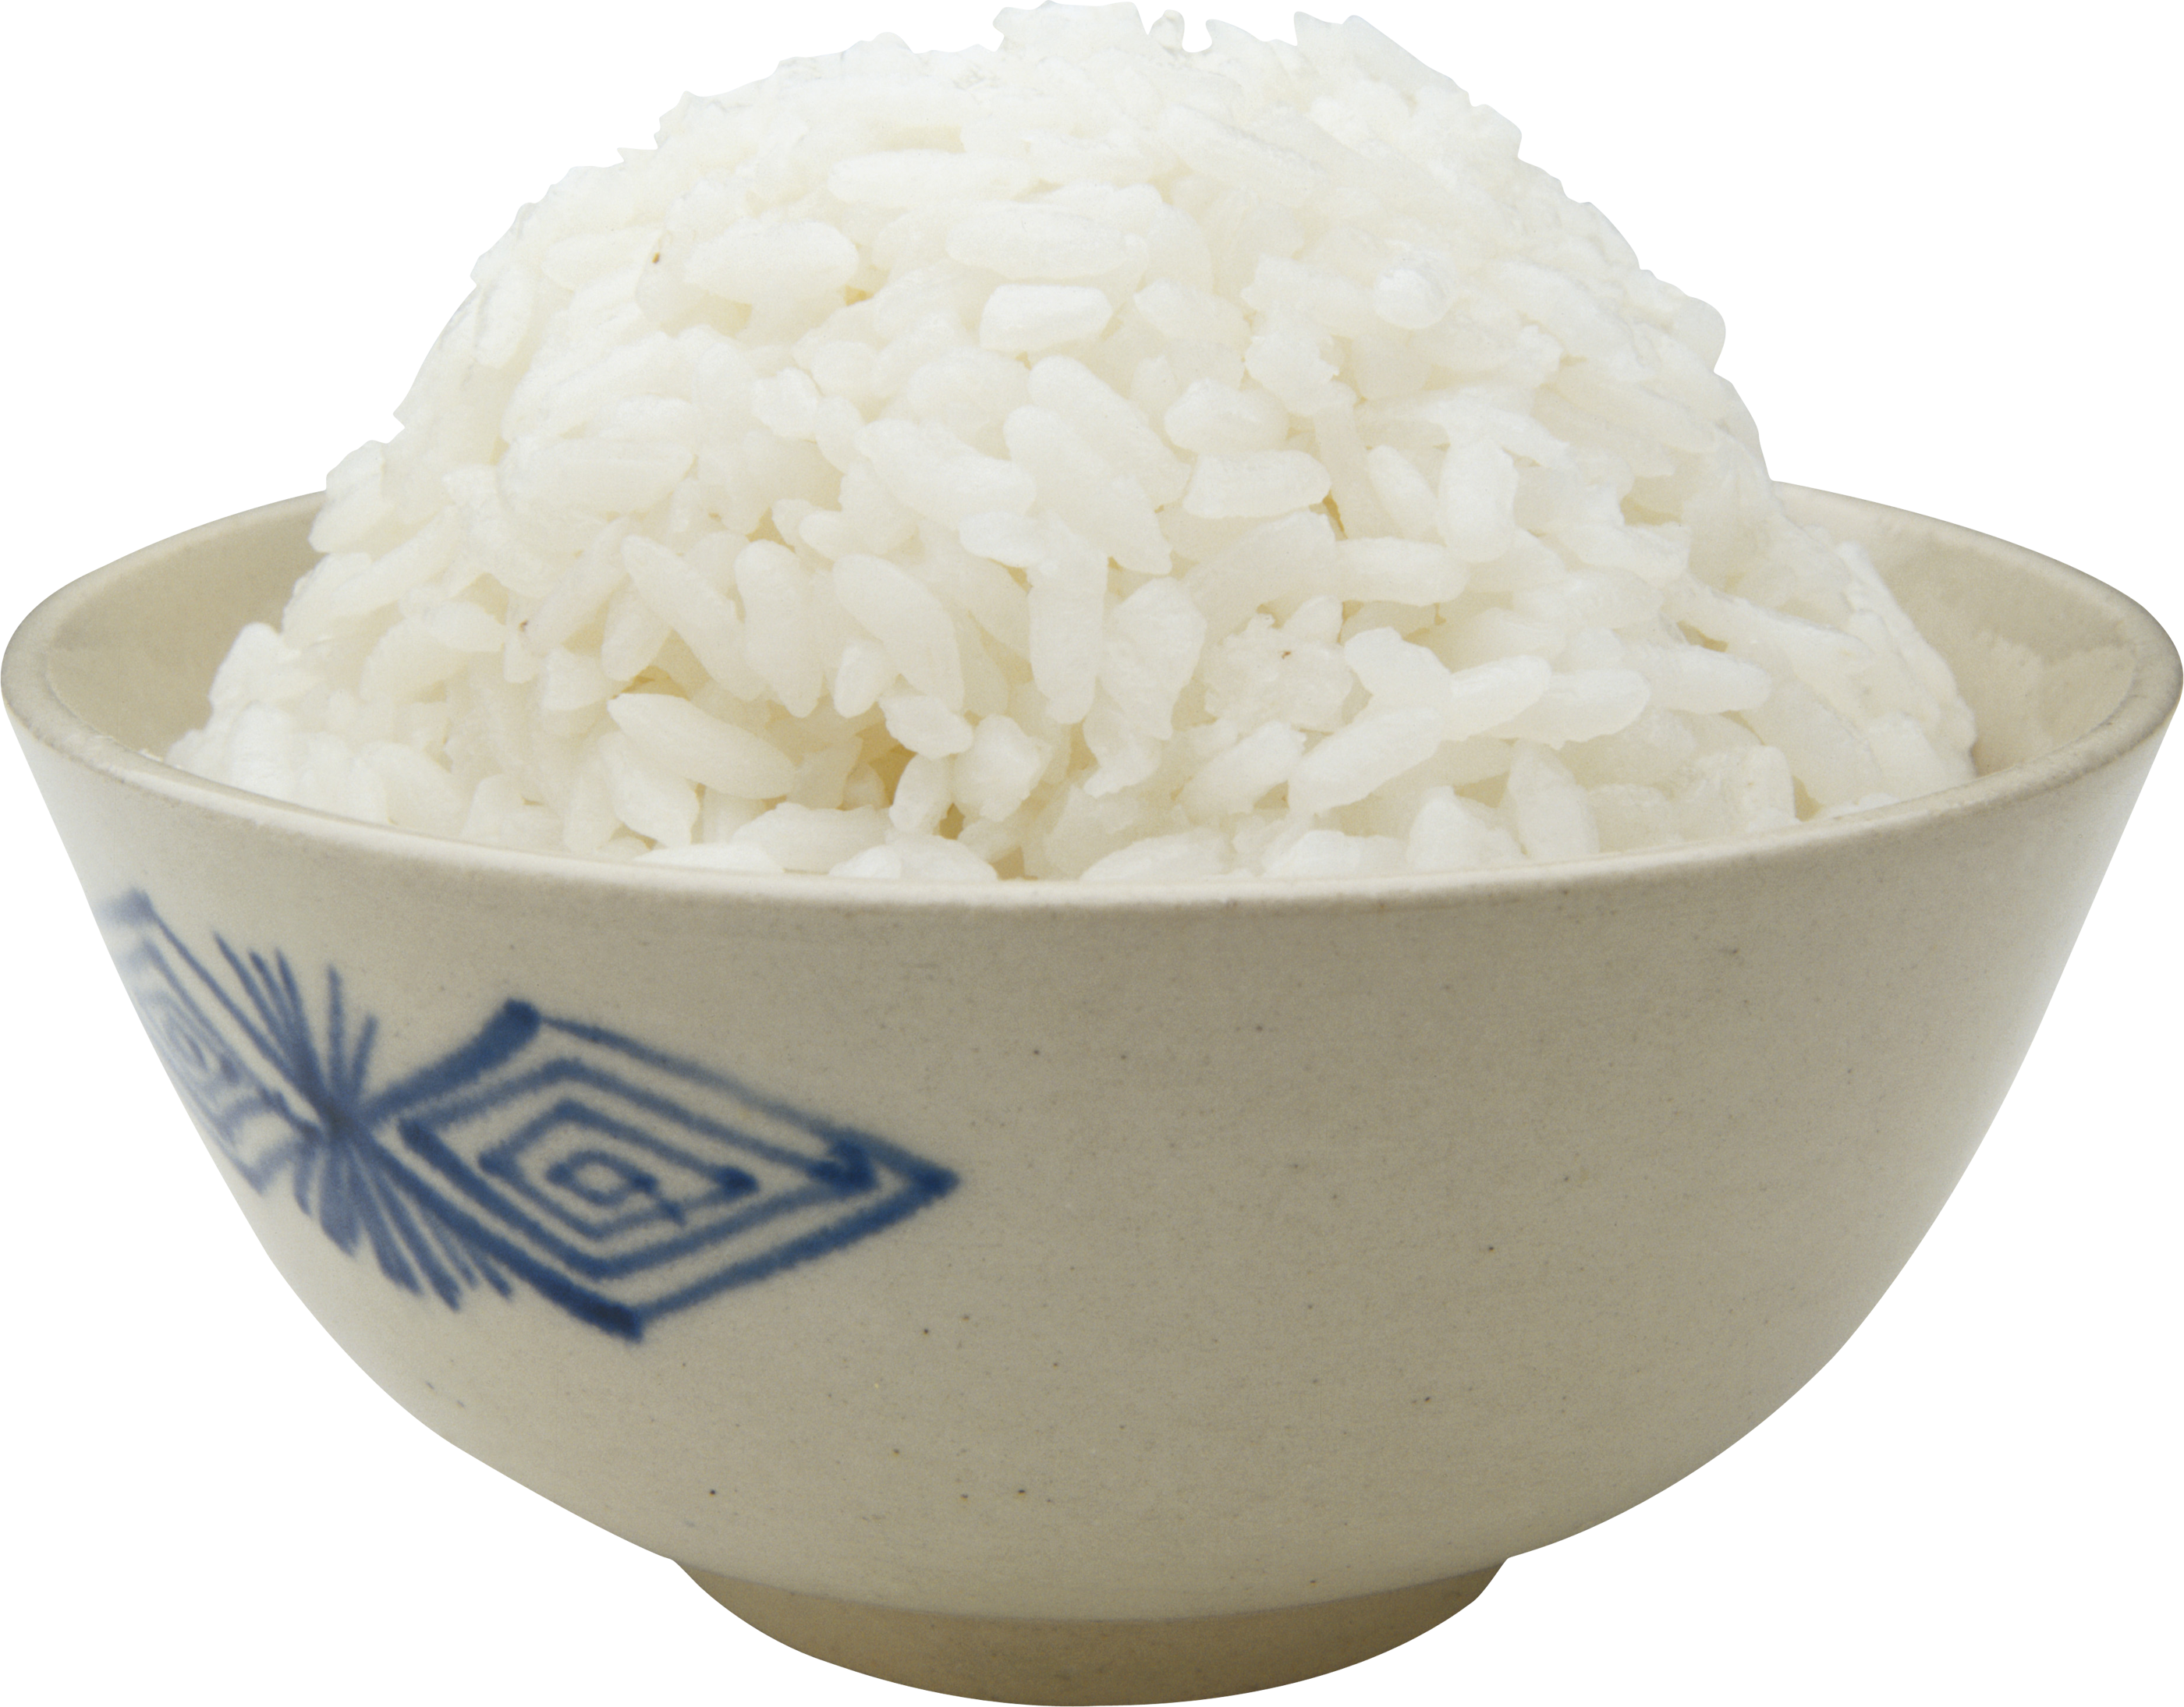 Grain of rice png. Image purepng free transparent